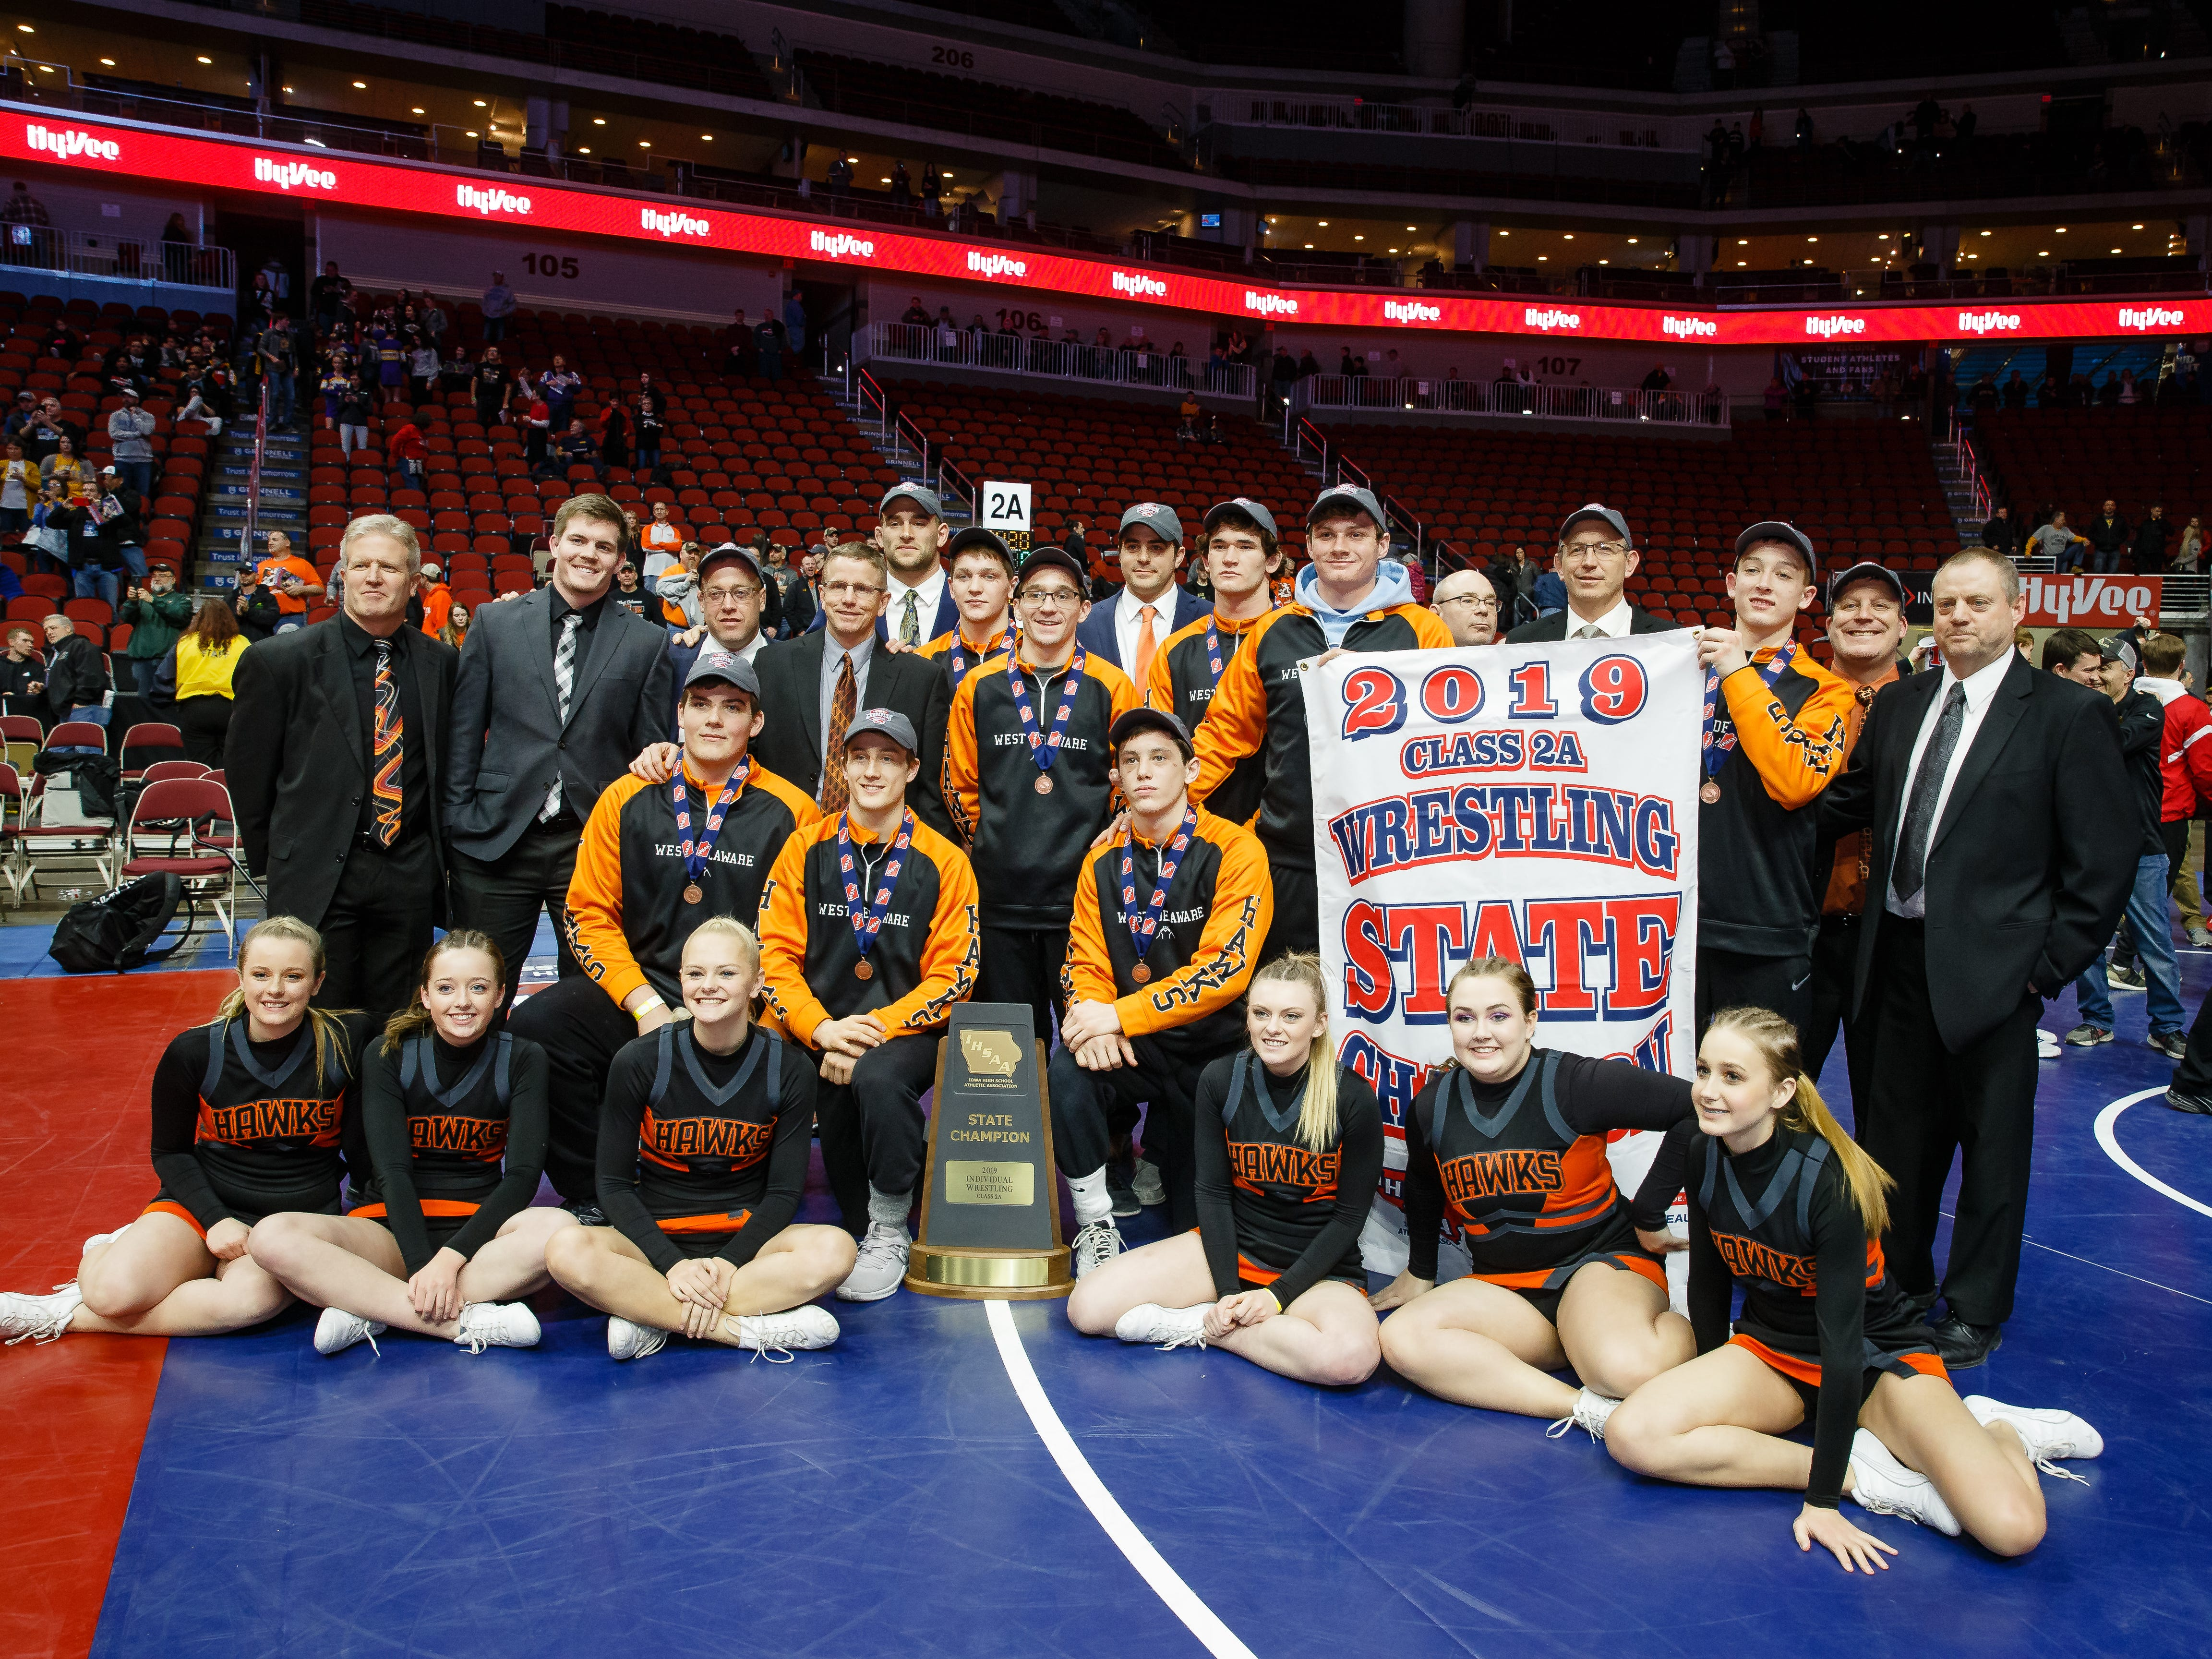 West Delaware poses for a photo after winning the 2A traditional team championship at the Iowa state wrestling championships on Saturday, Feb. 16, 2019 in Des Moines.